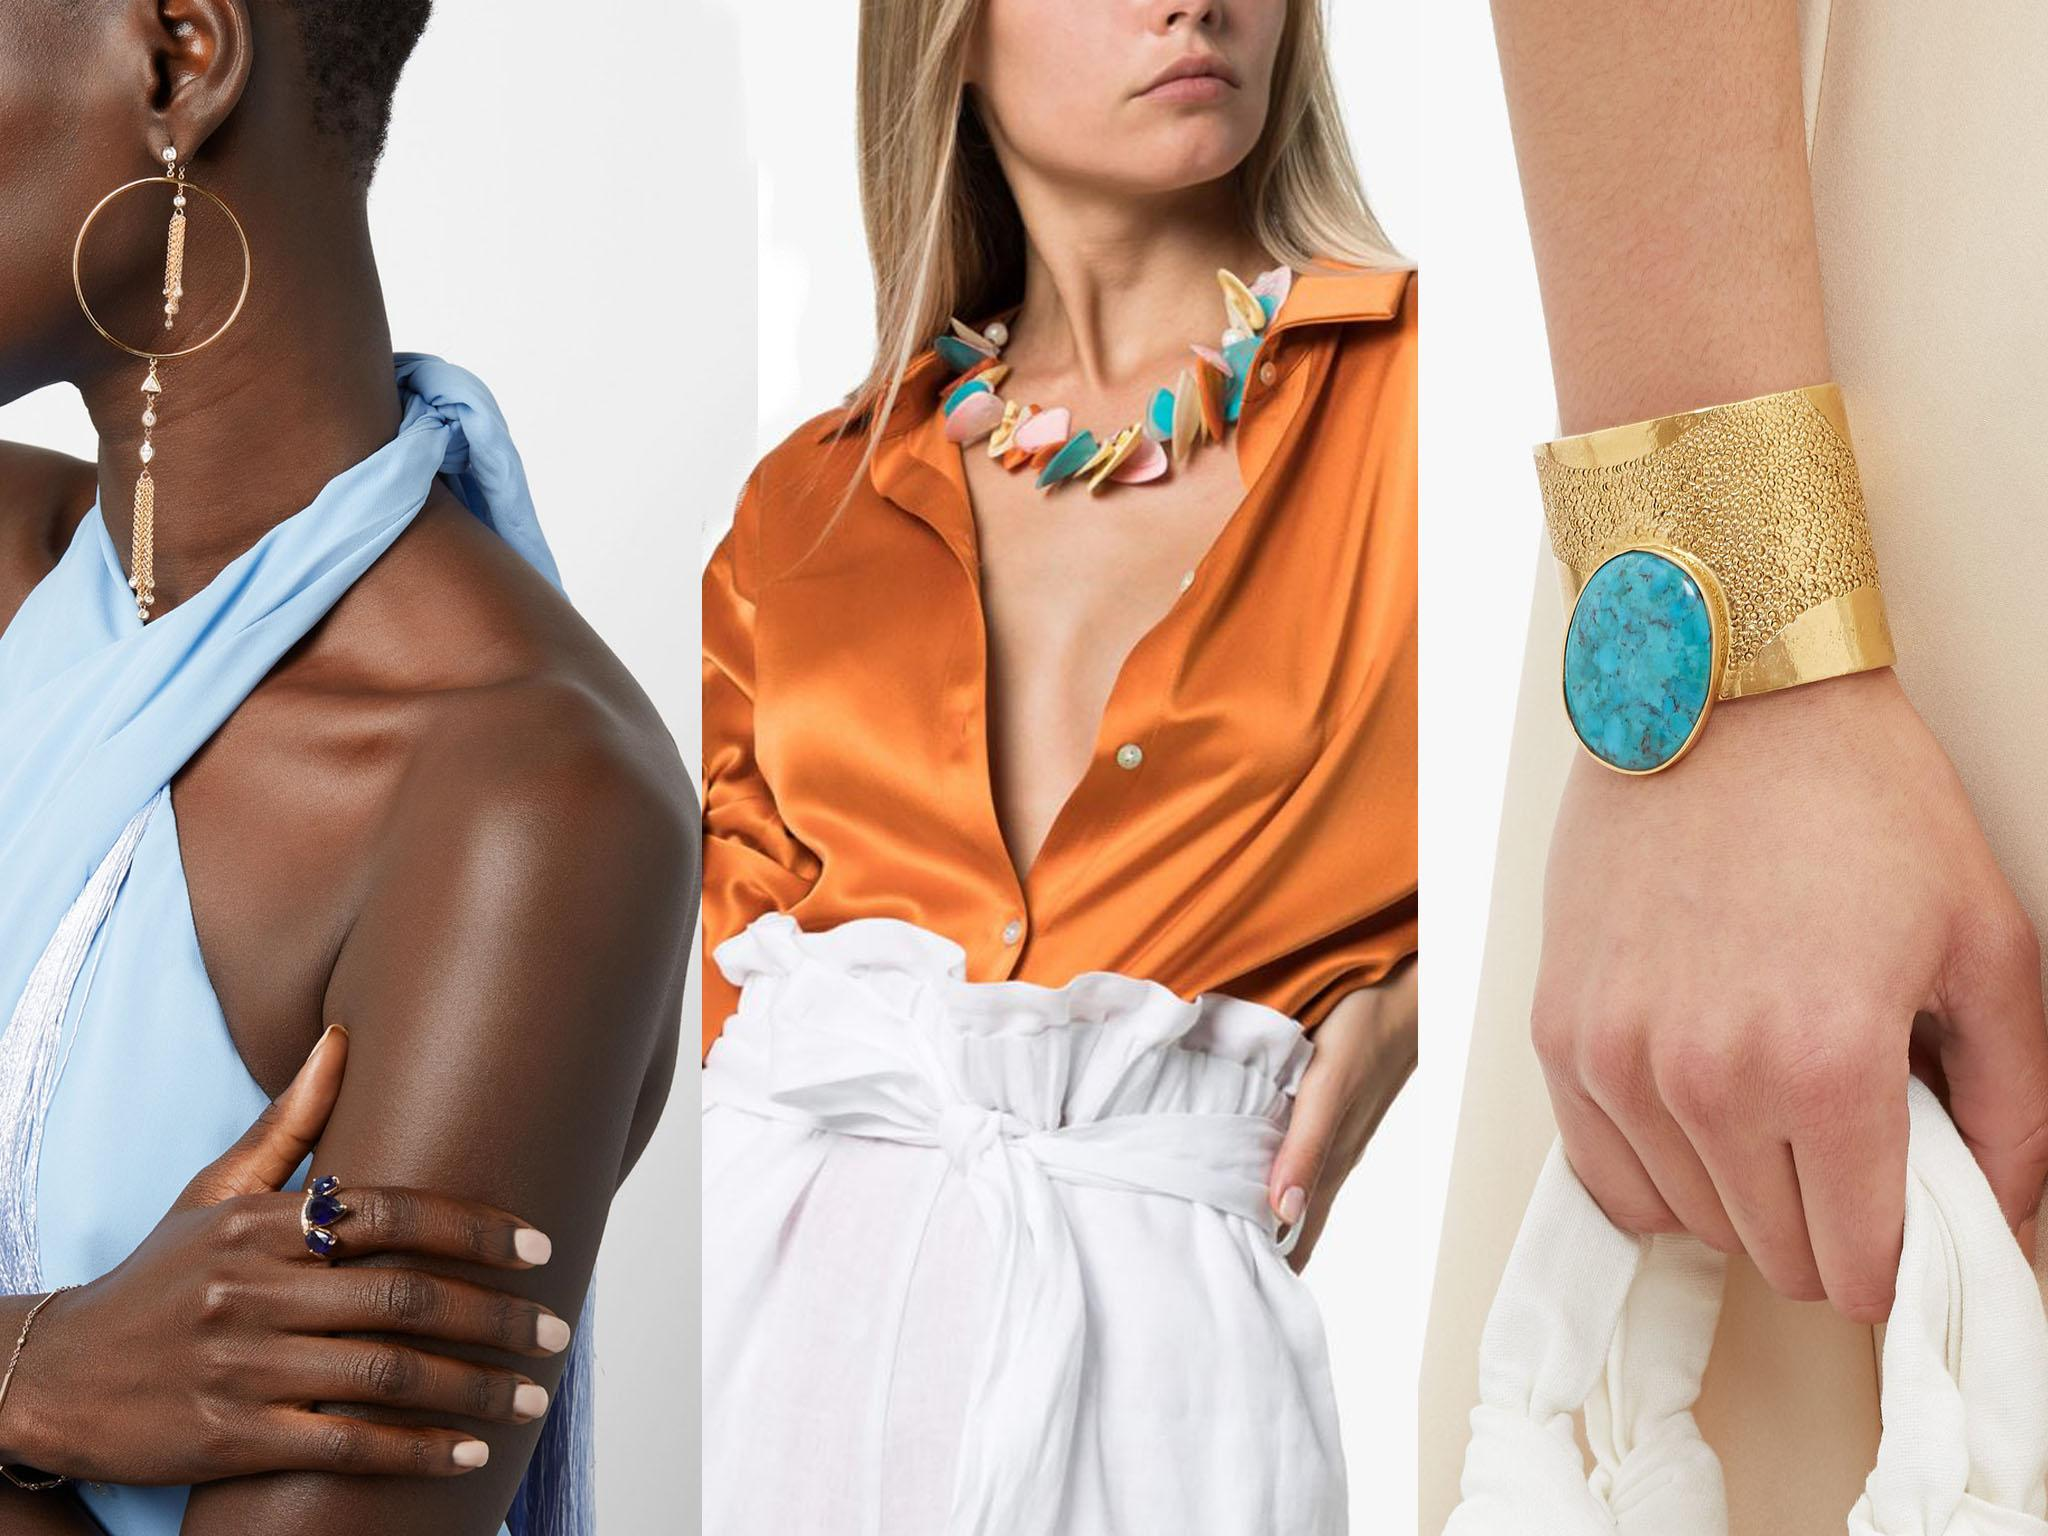 Best online jewellery shops: High street, designer and independent brands that will become your go-tos